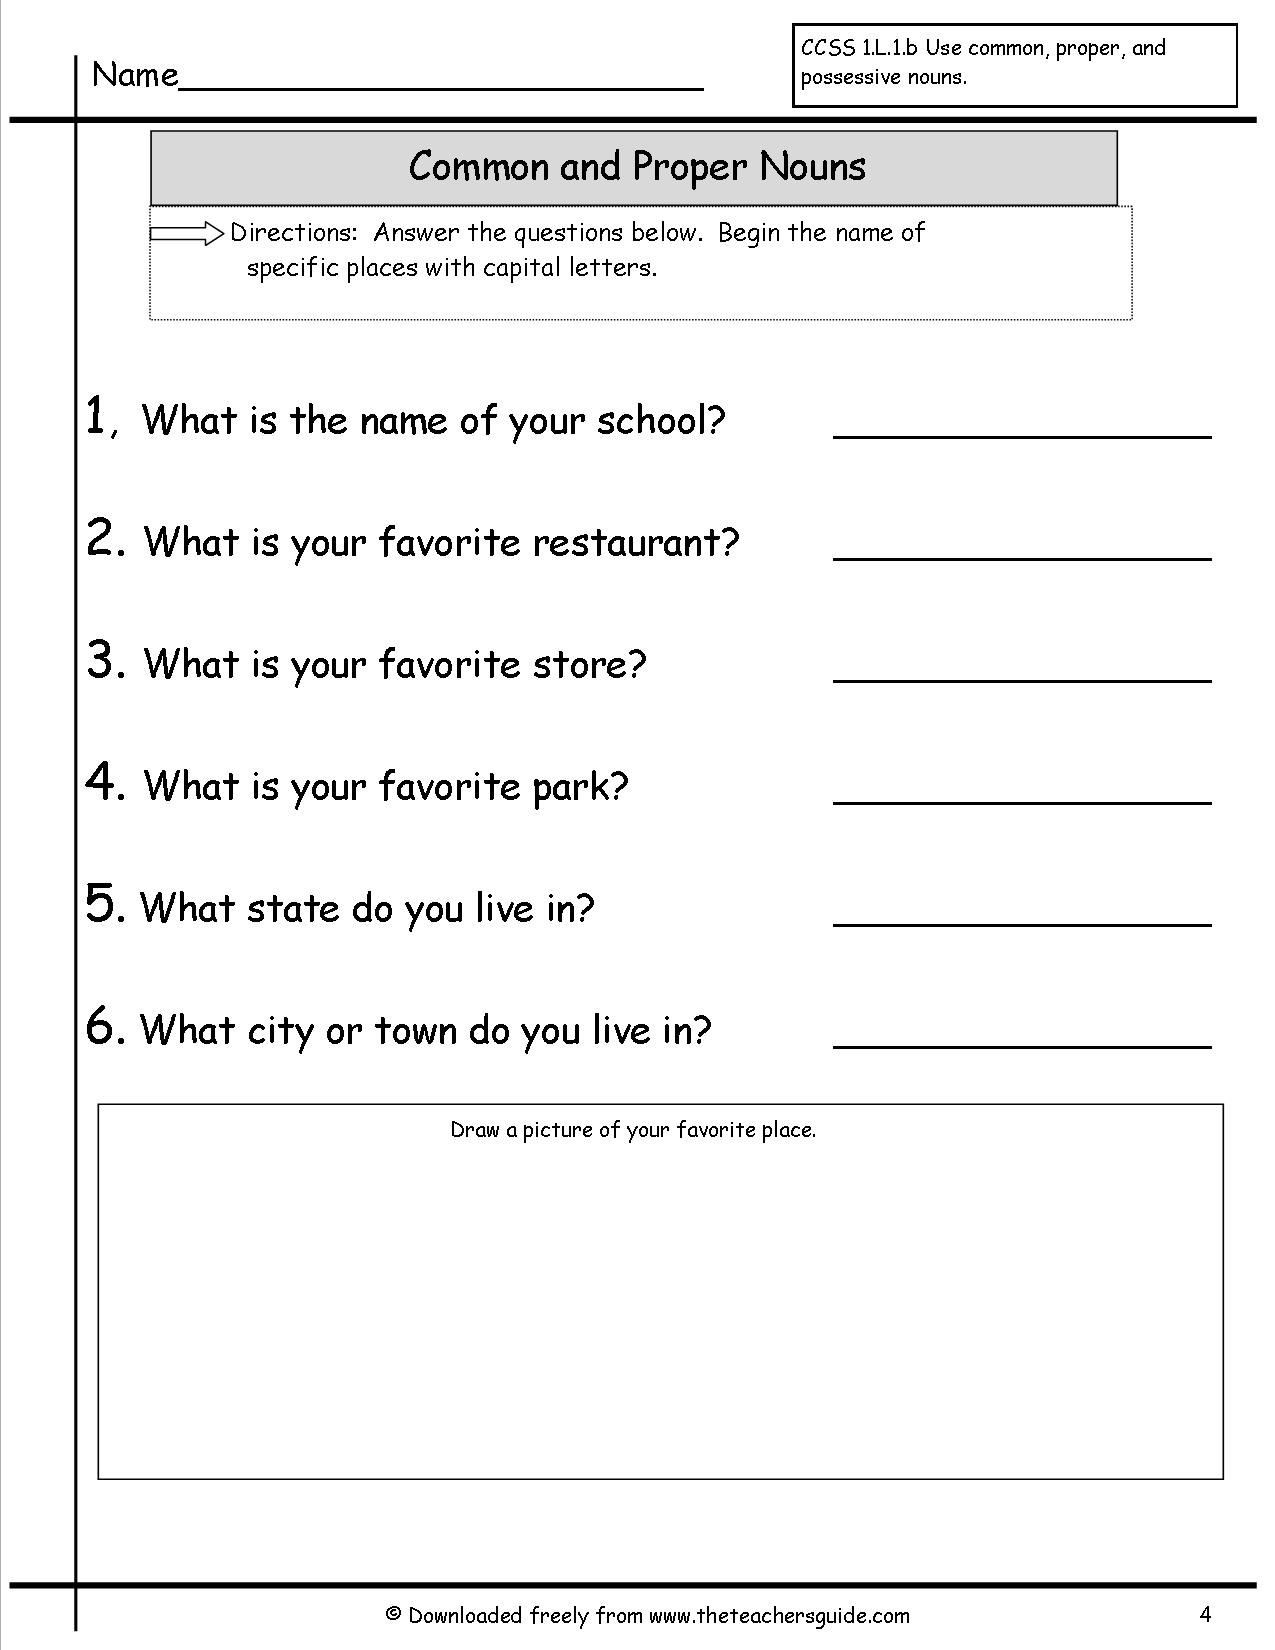 Proper Nouns Worksheet 2nd Grade Mon and Proper Nouns Worksheet